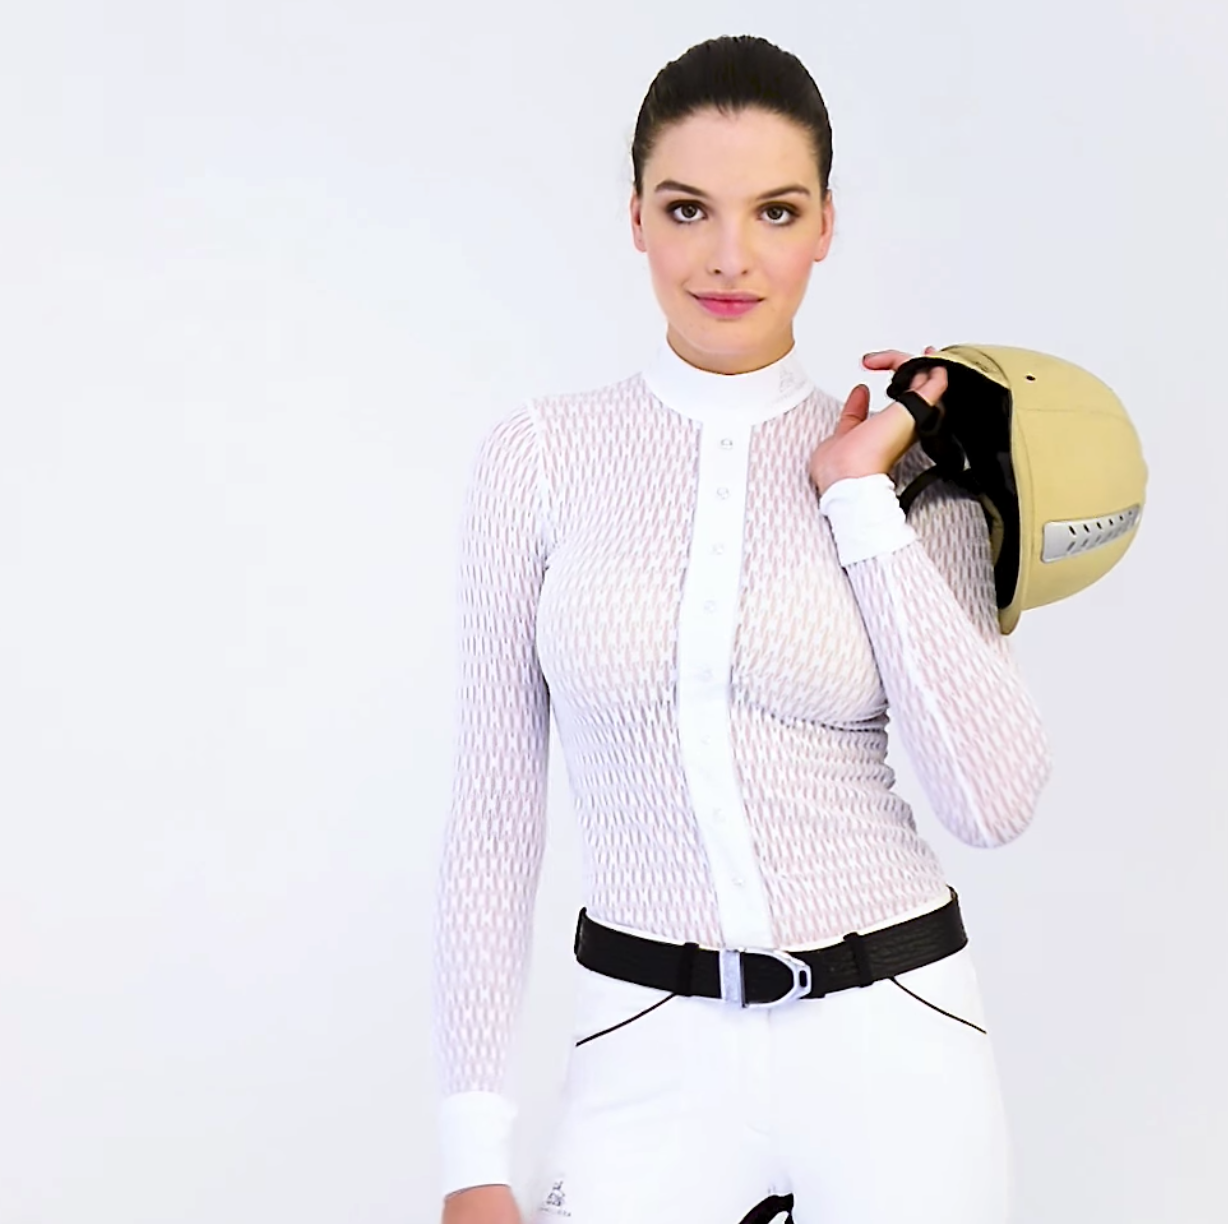 Diva Long Sleeve Technical Show Shirt - Equestrian Fashion Outfitters